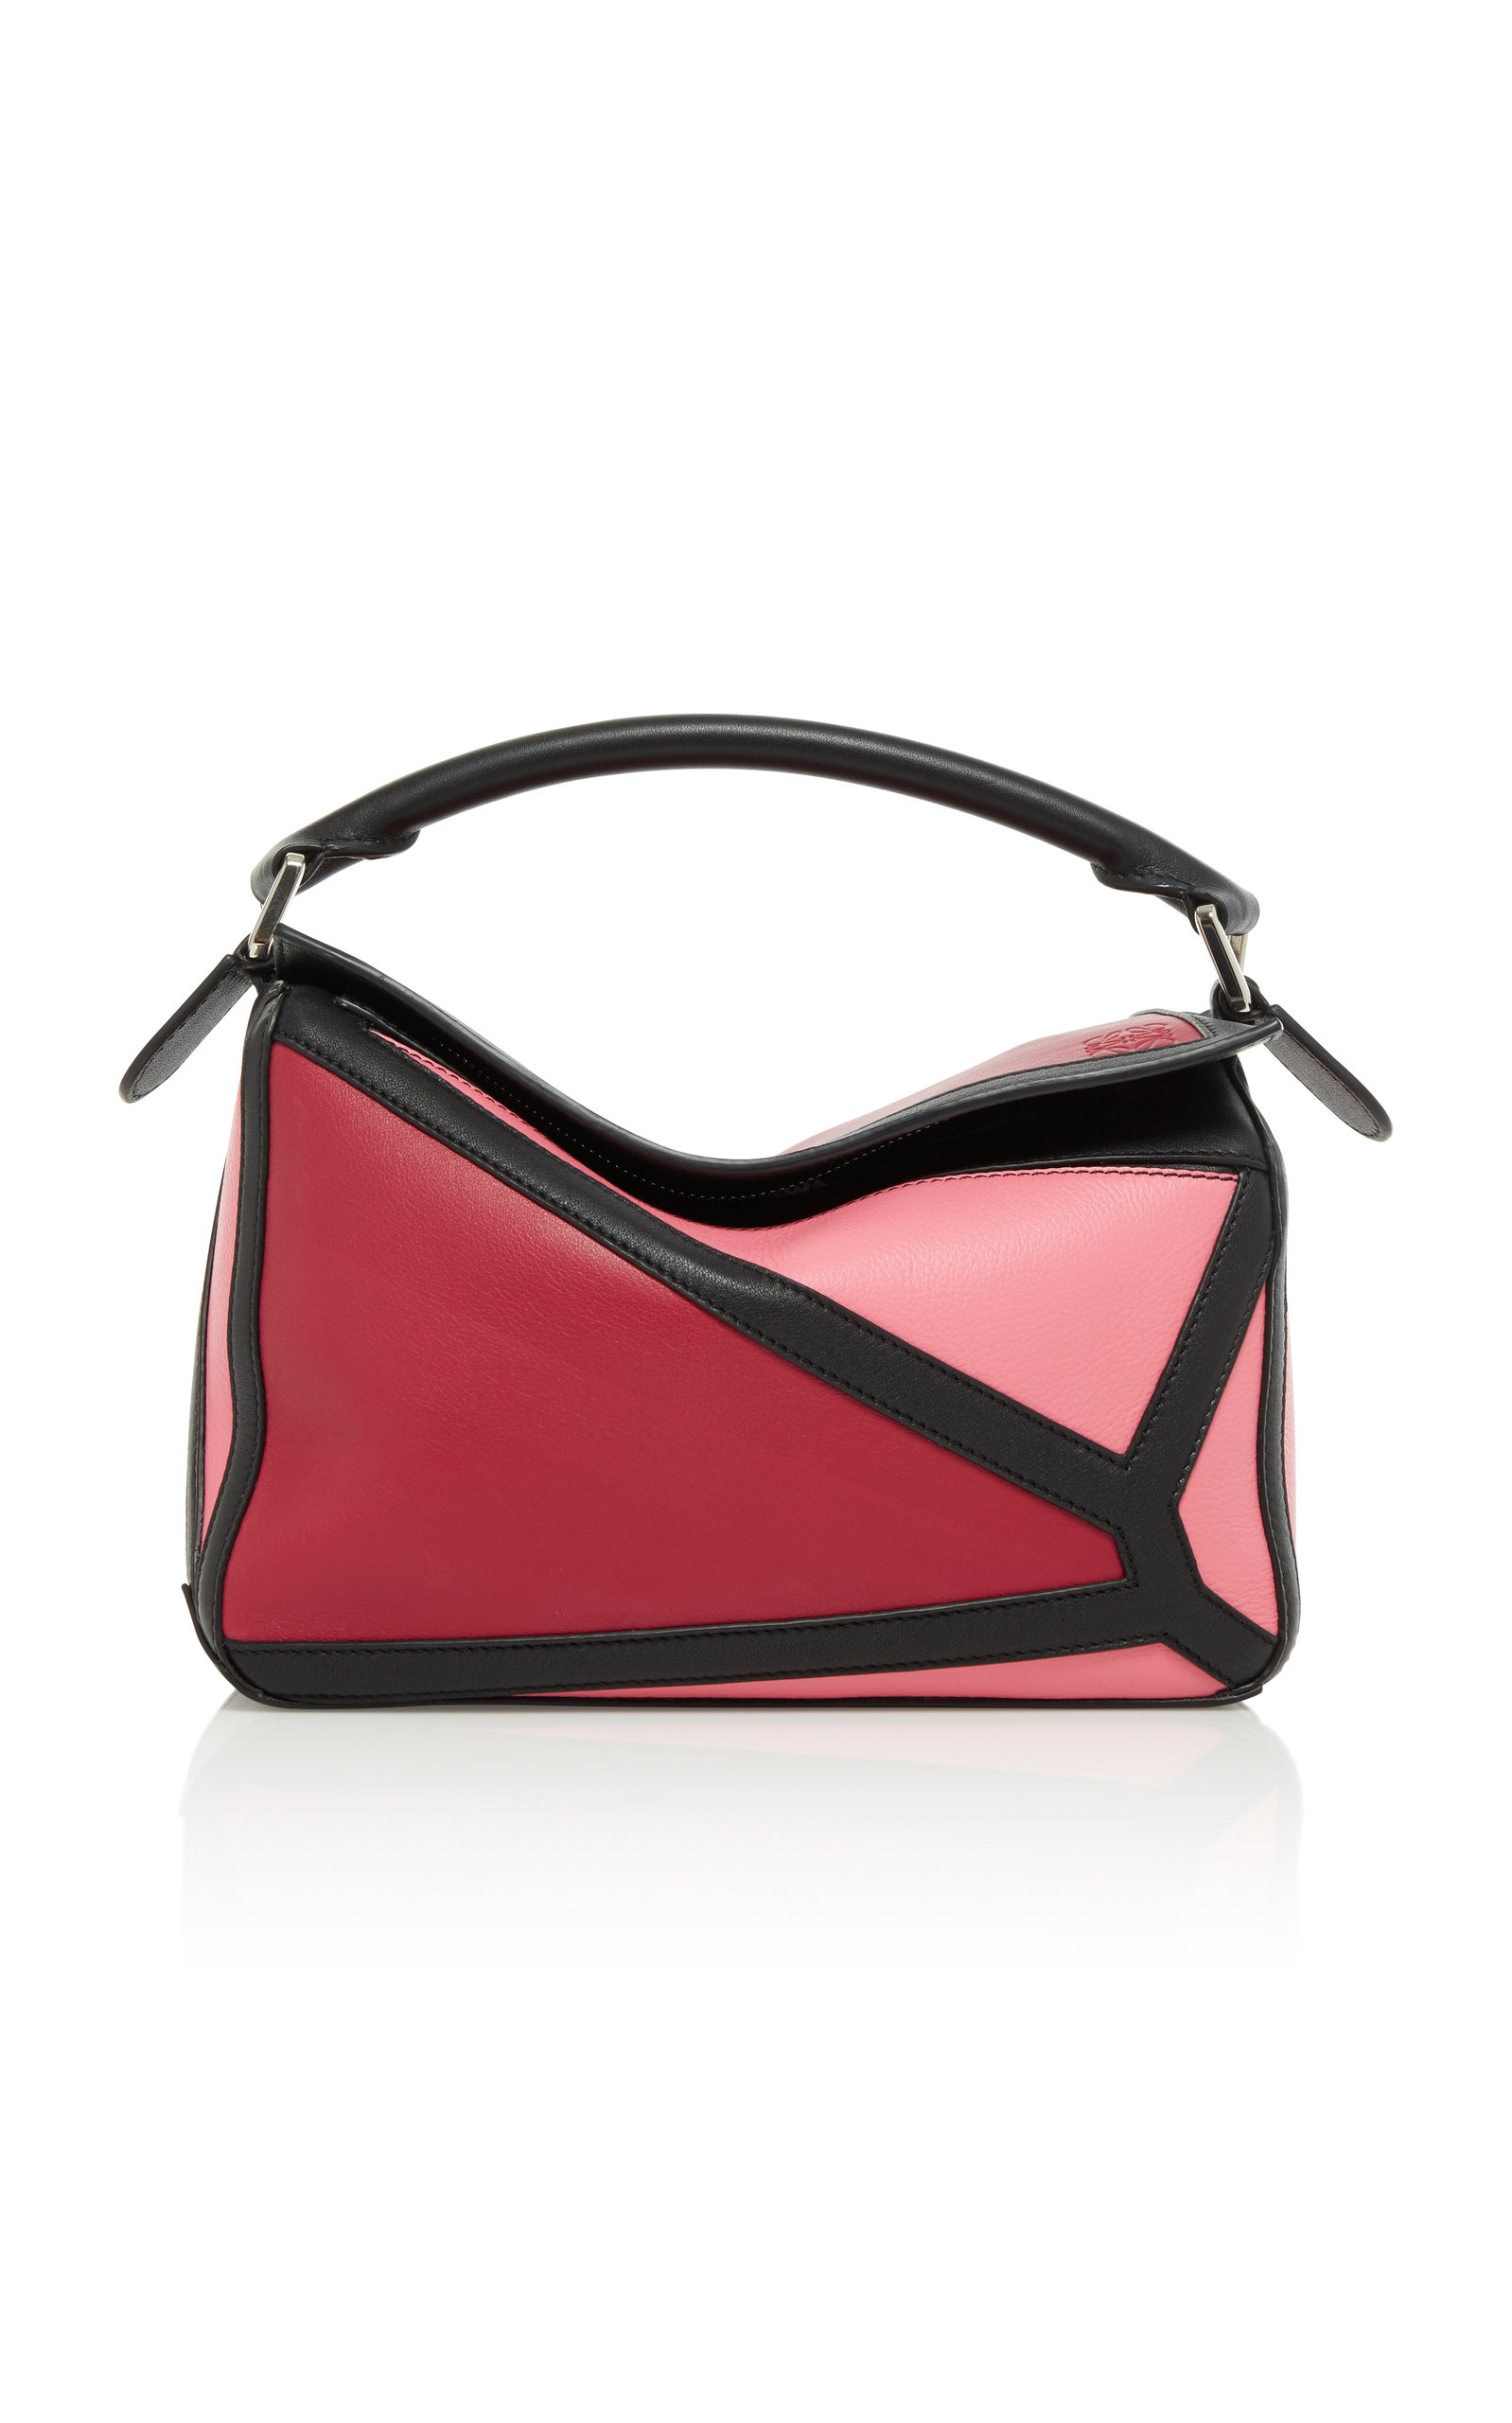 6689c172db0 Loewe Puzzle Graphic Colorblock Leather Bag - Pink